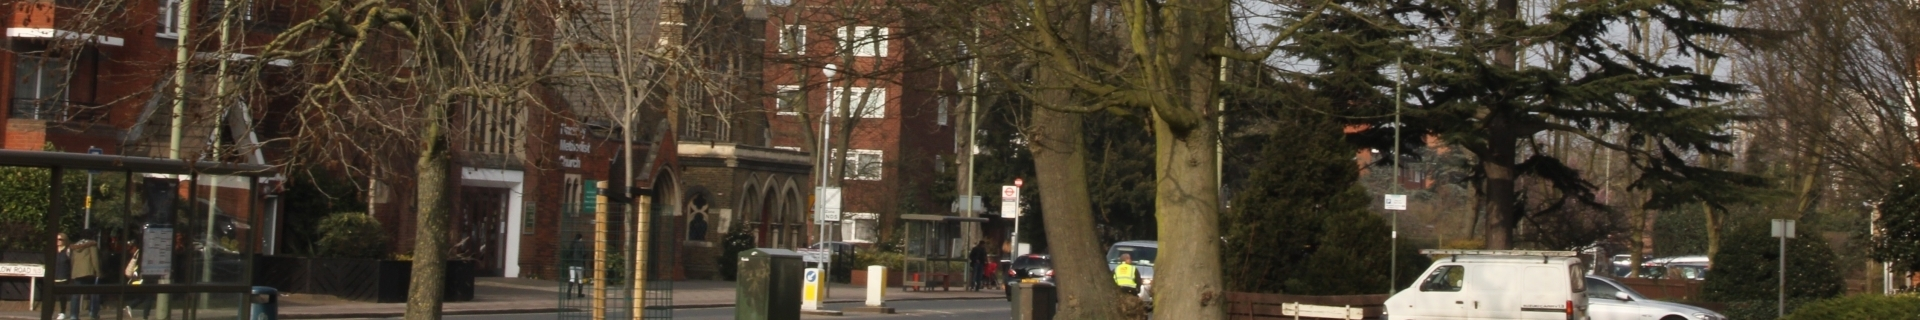 Banner image for Finchley and Golders Green